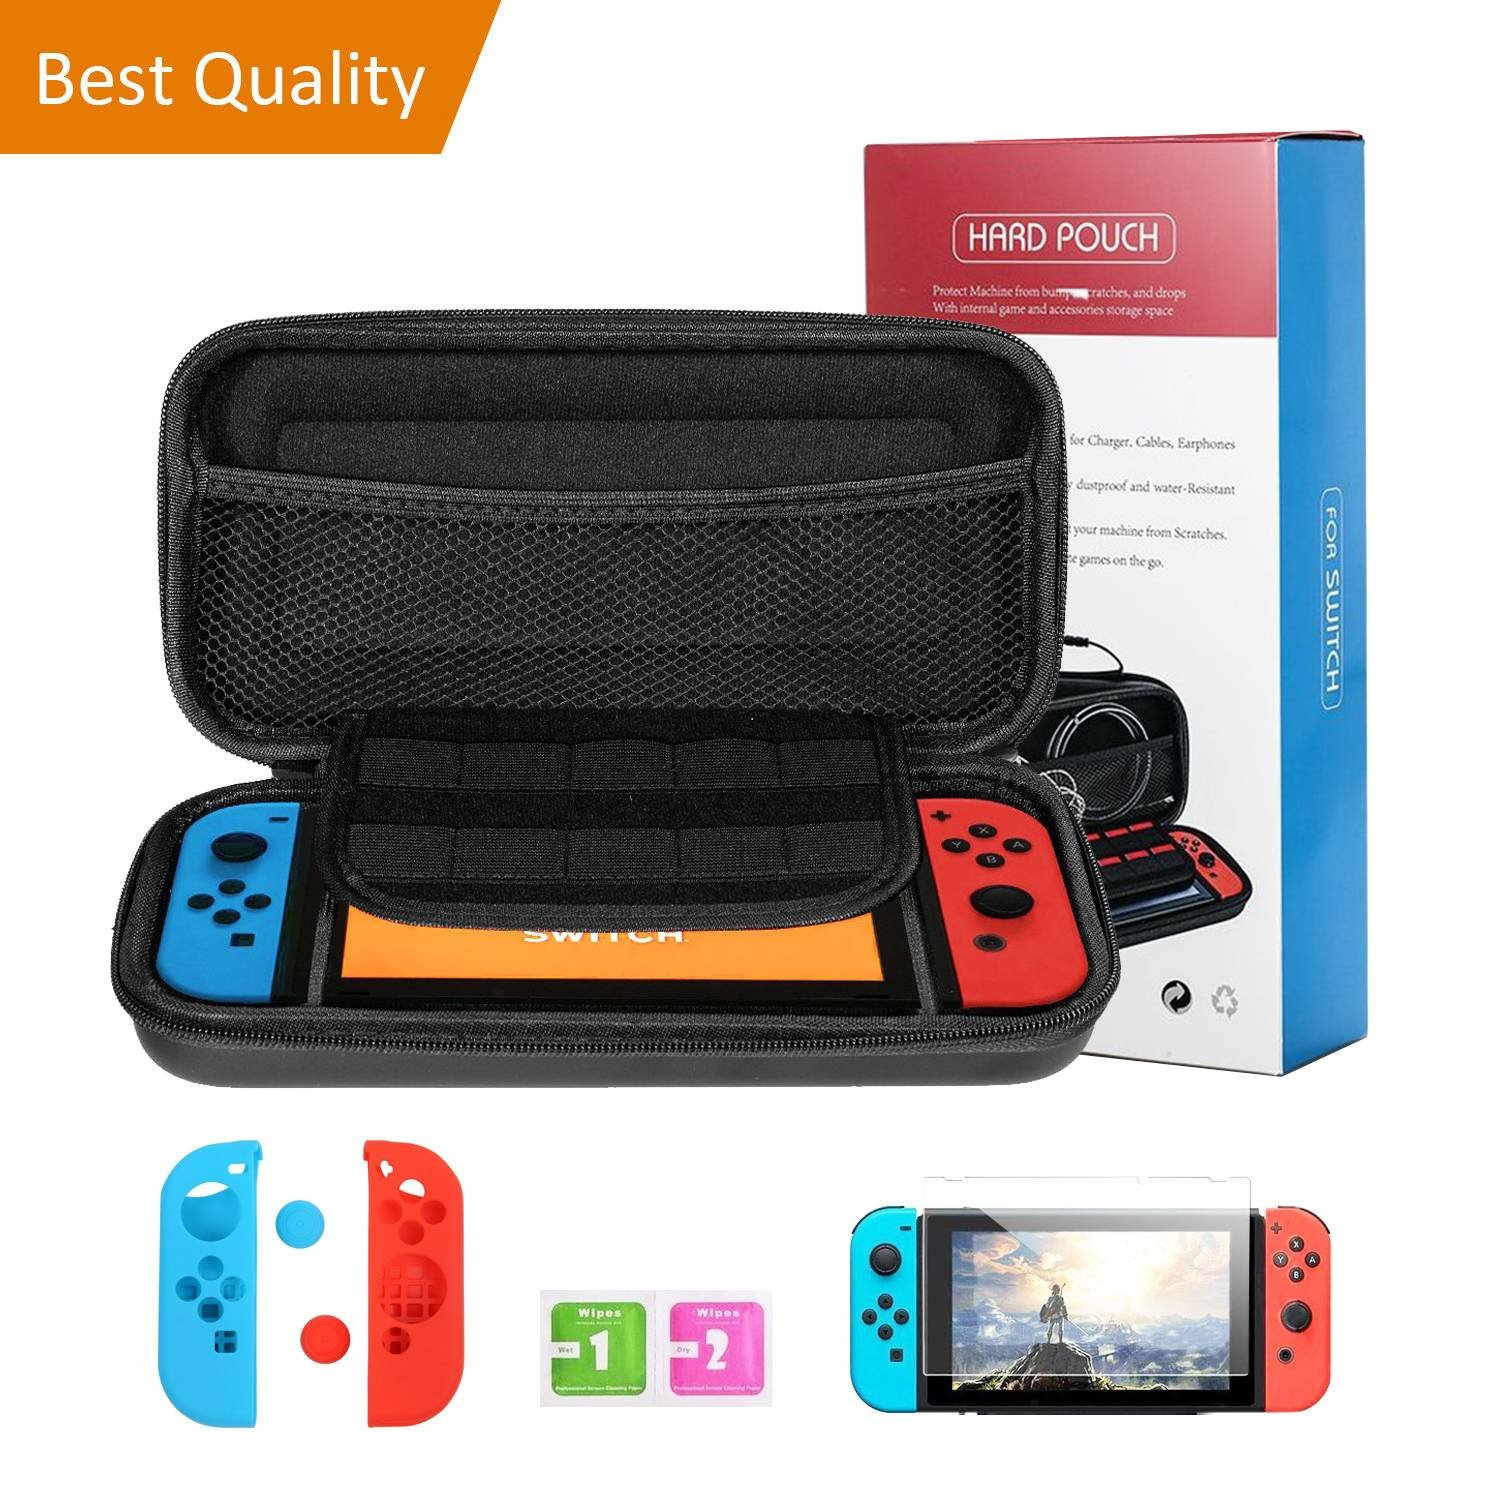 Carrying Case for Nintendo Switch, Protective Hard Shell for Game Console, Bundled with Tempered Glass Screen and Joy-Con Grip Covers.